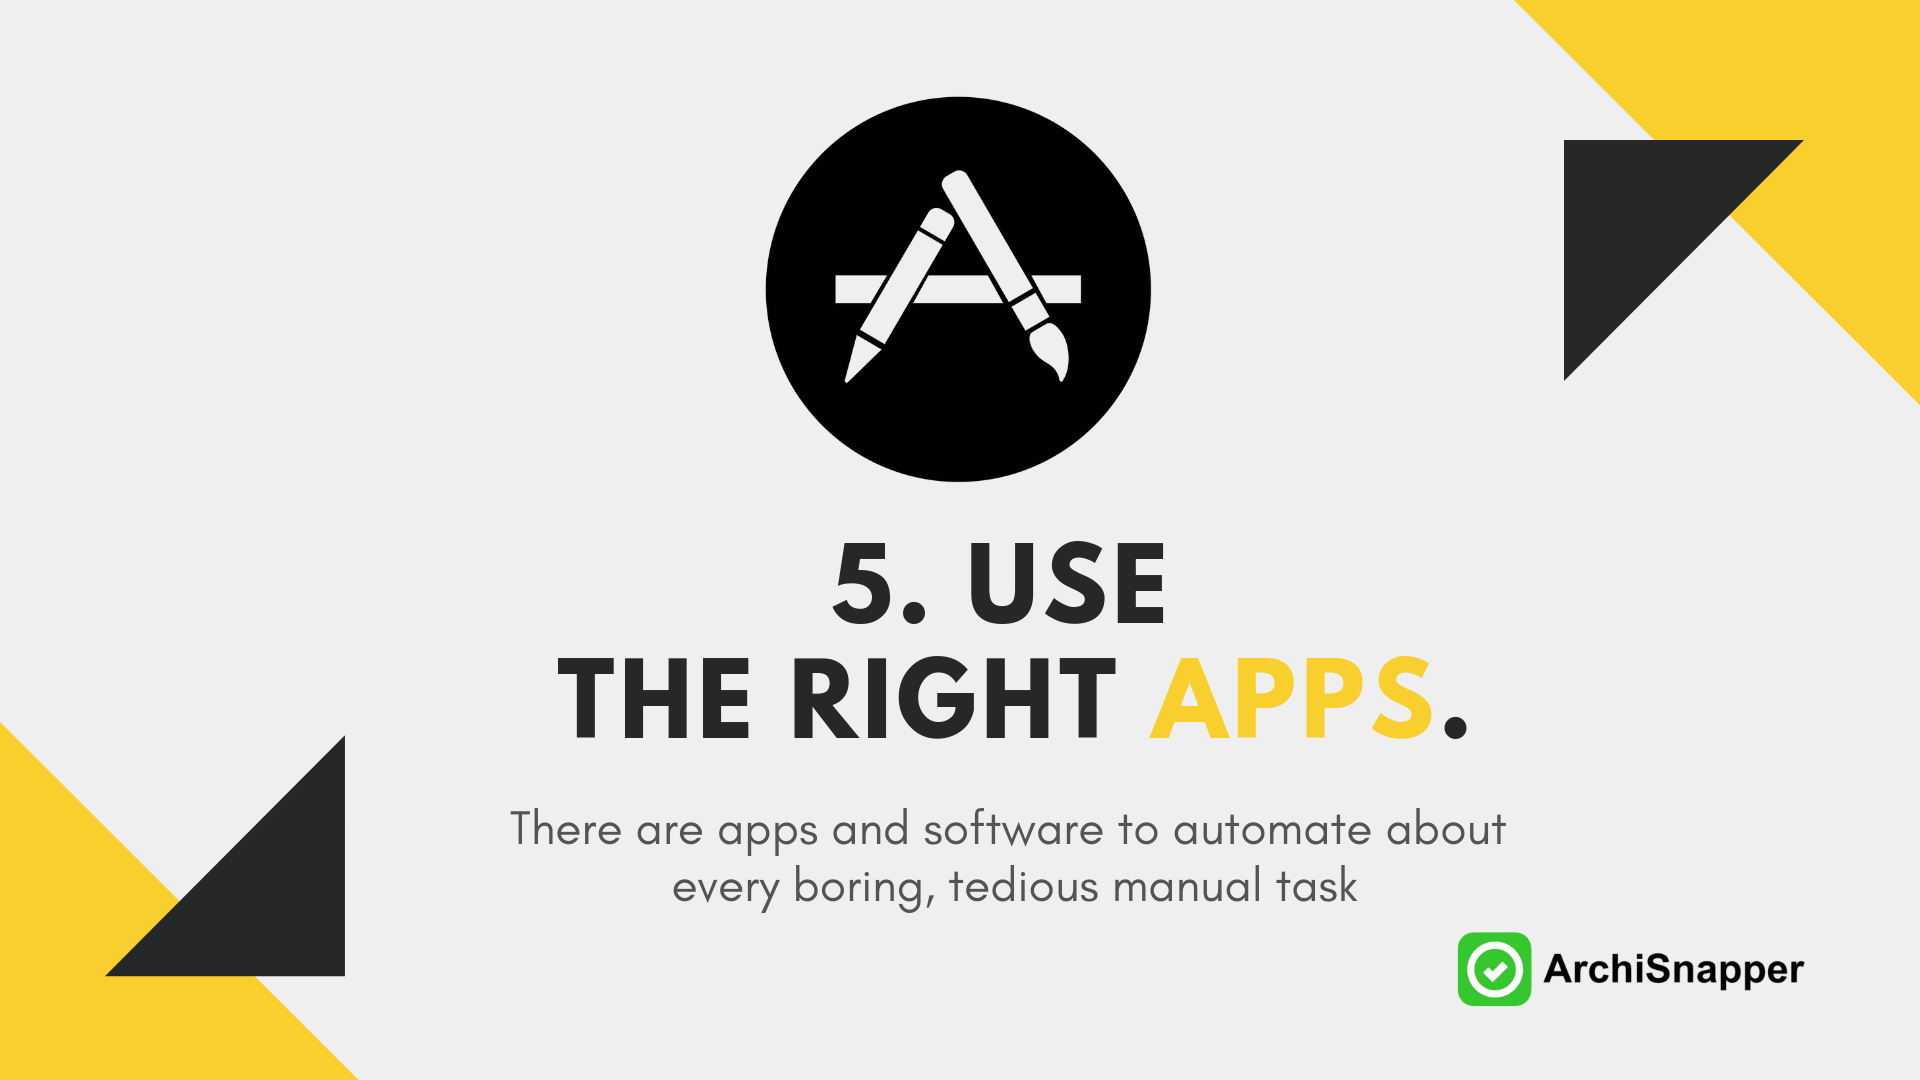 archisnapper_use_the_right_apps